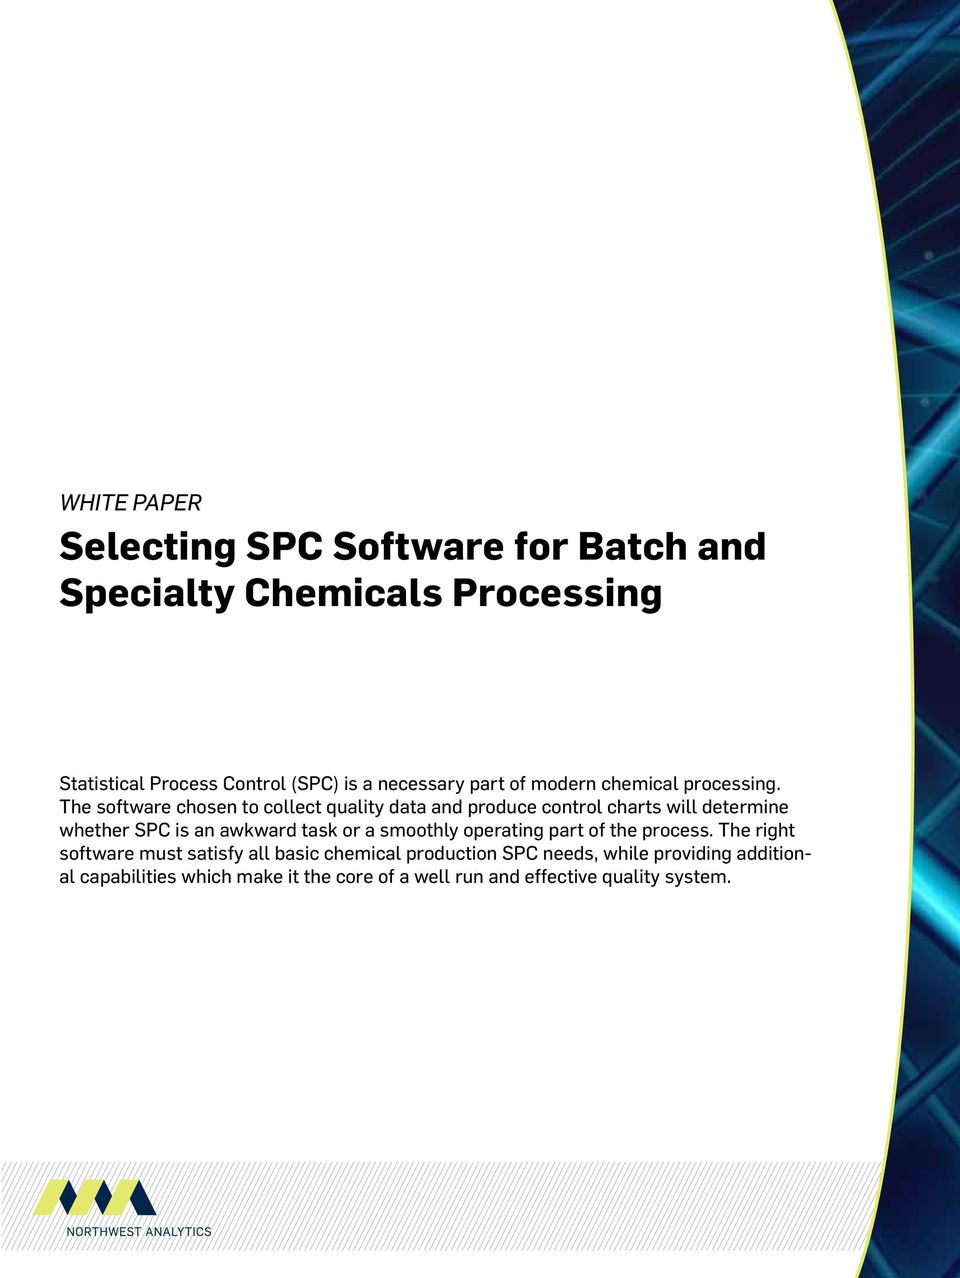 The software chosen to collect quality data and produce control charts will determine whether SPC is an awkward task or a